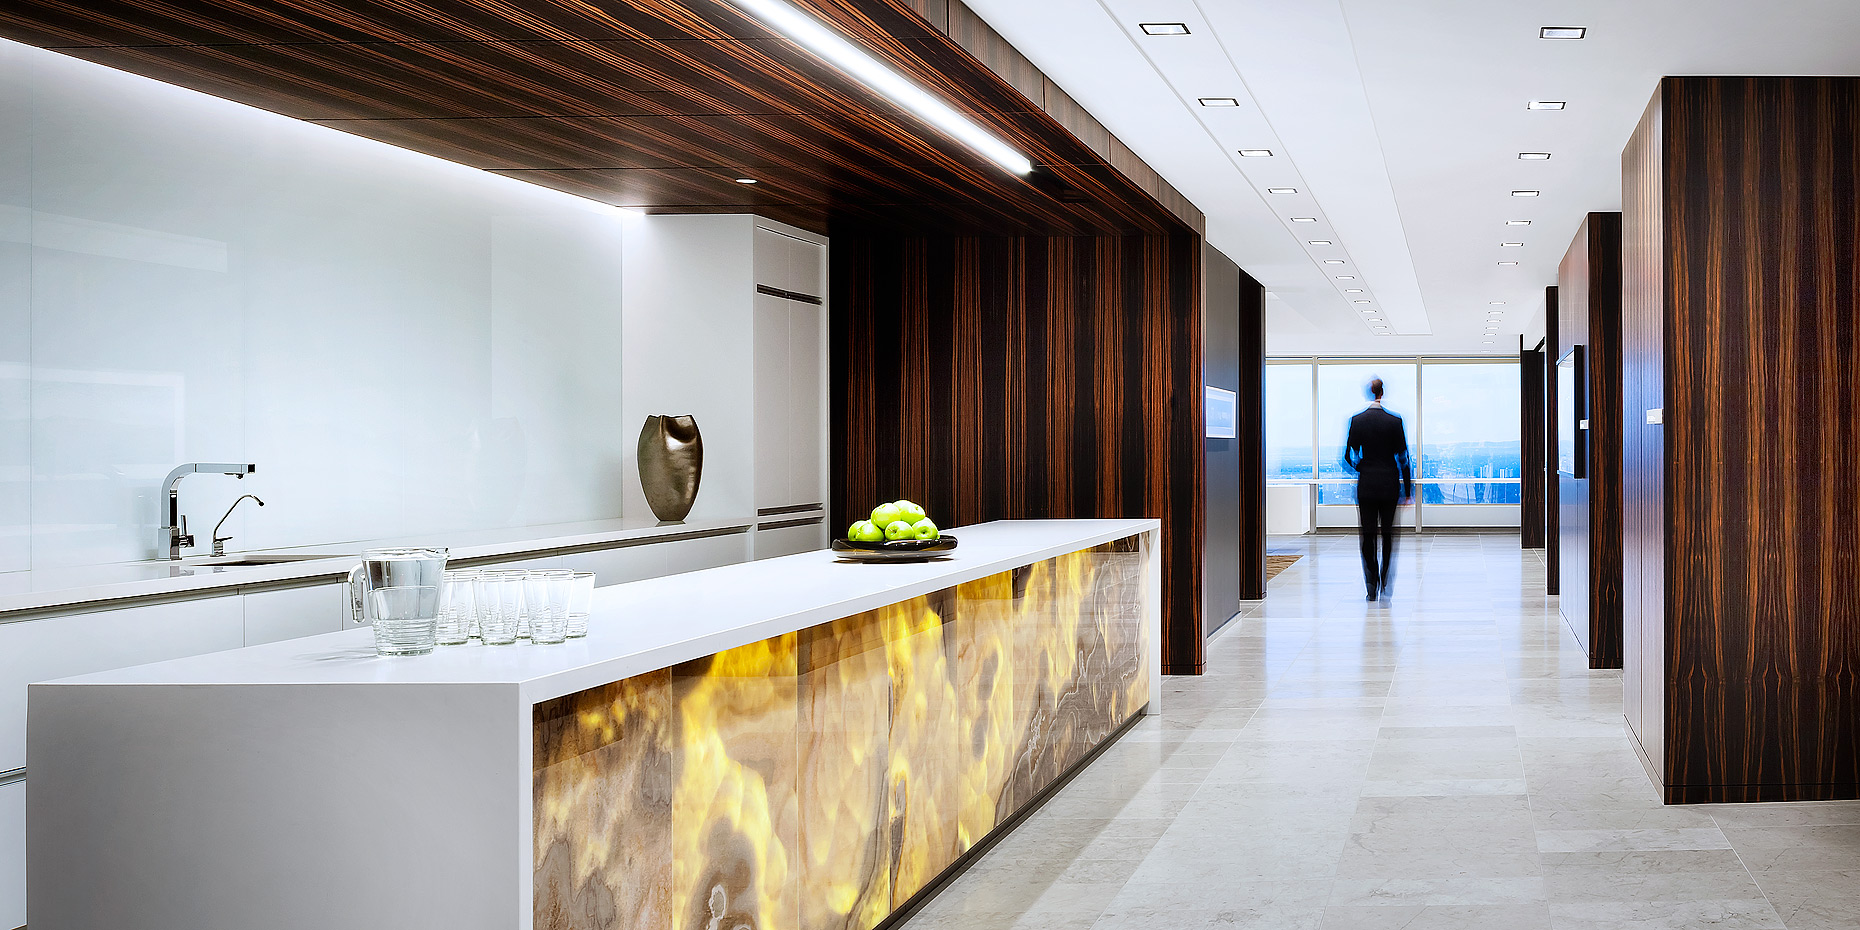 Law Offices by B+H Architects 3